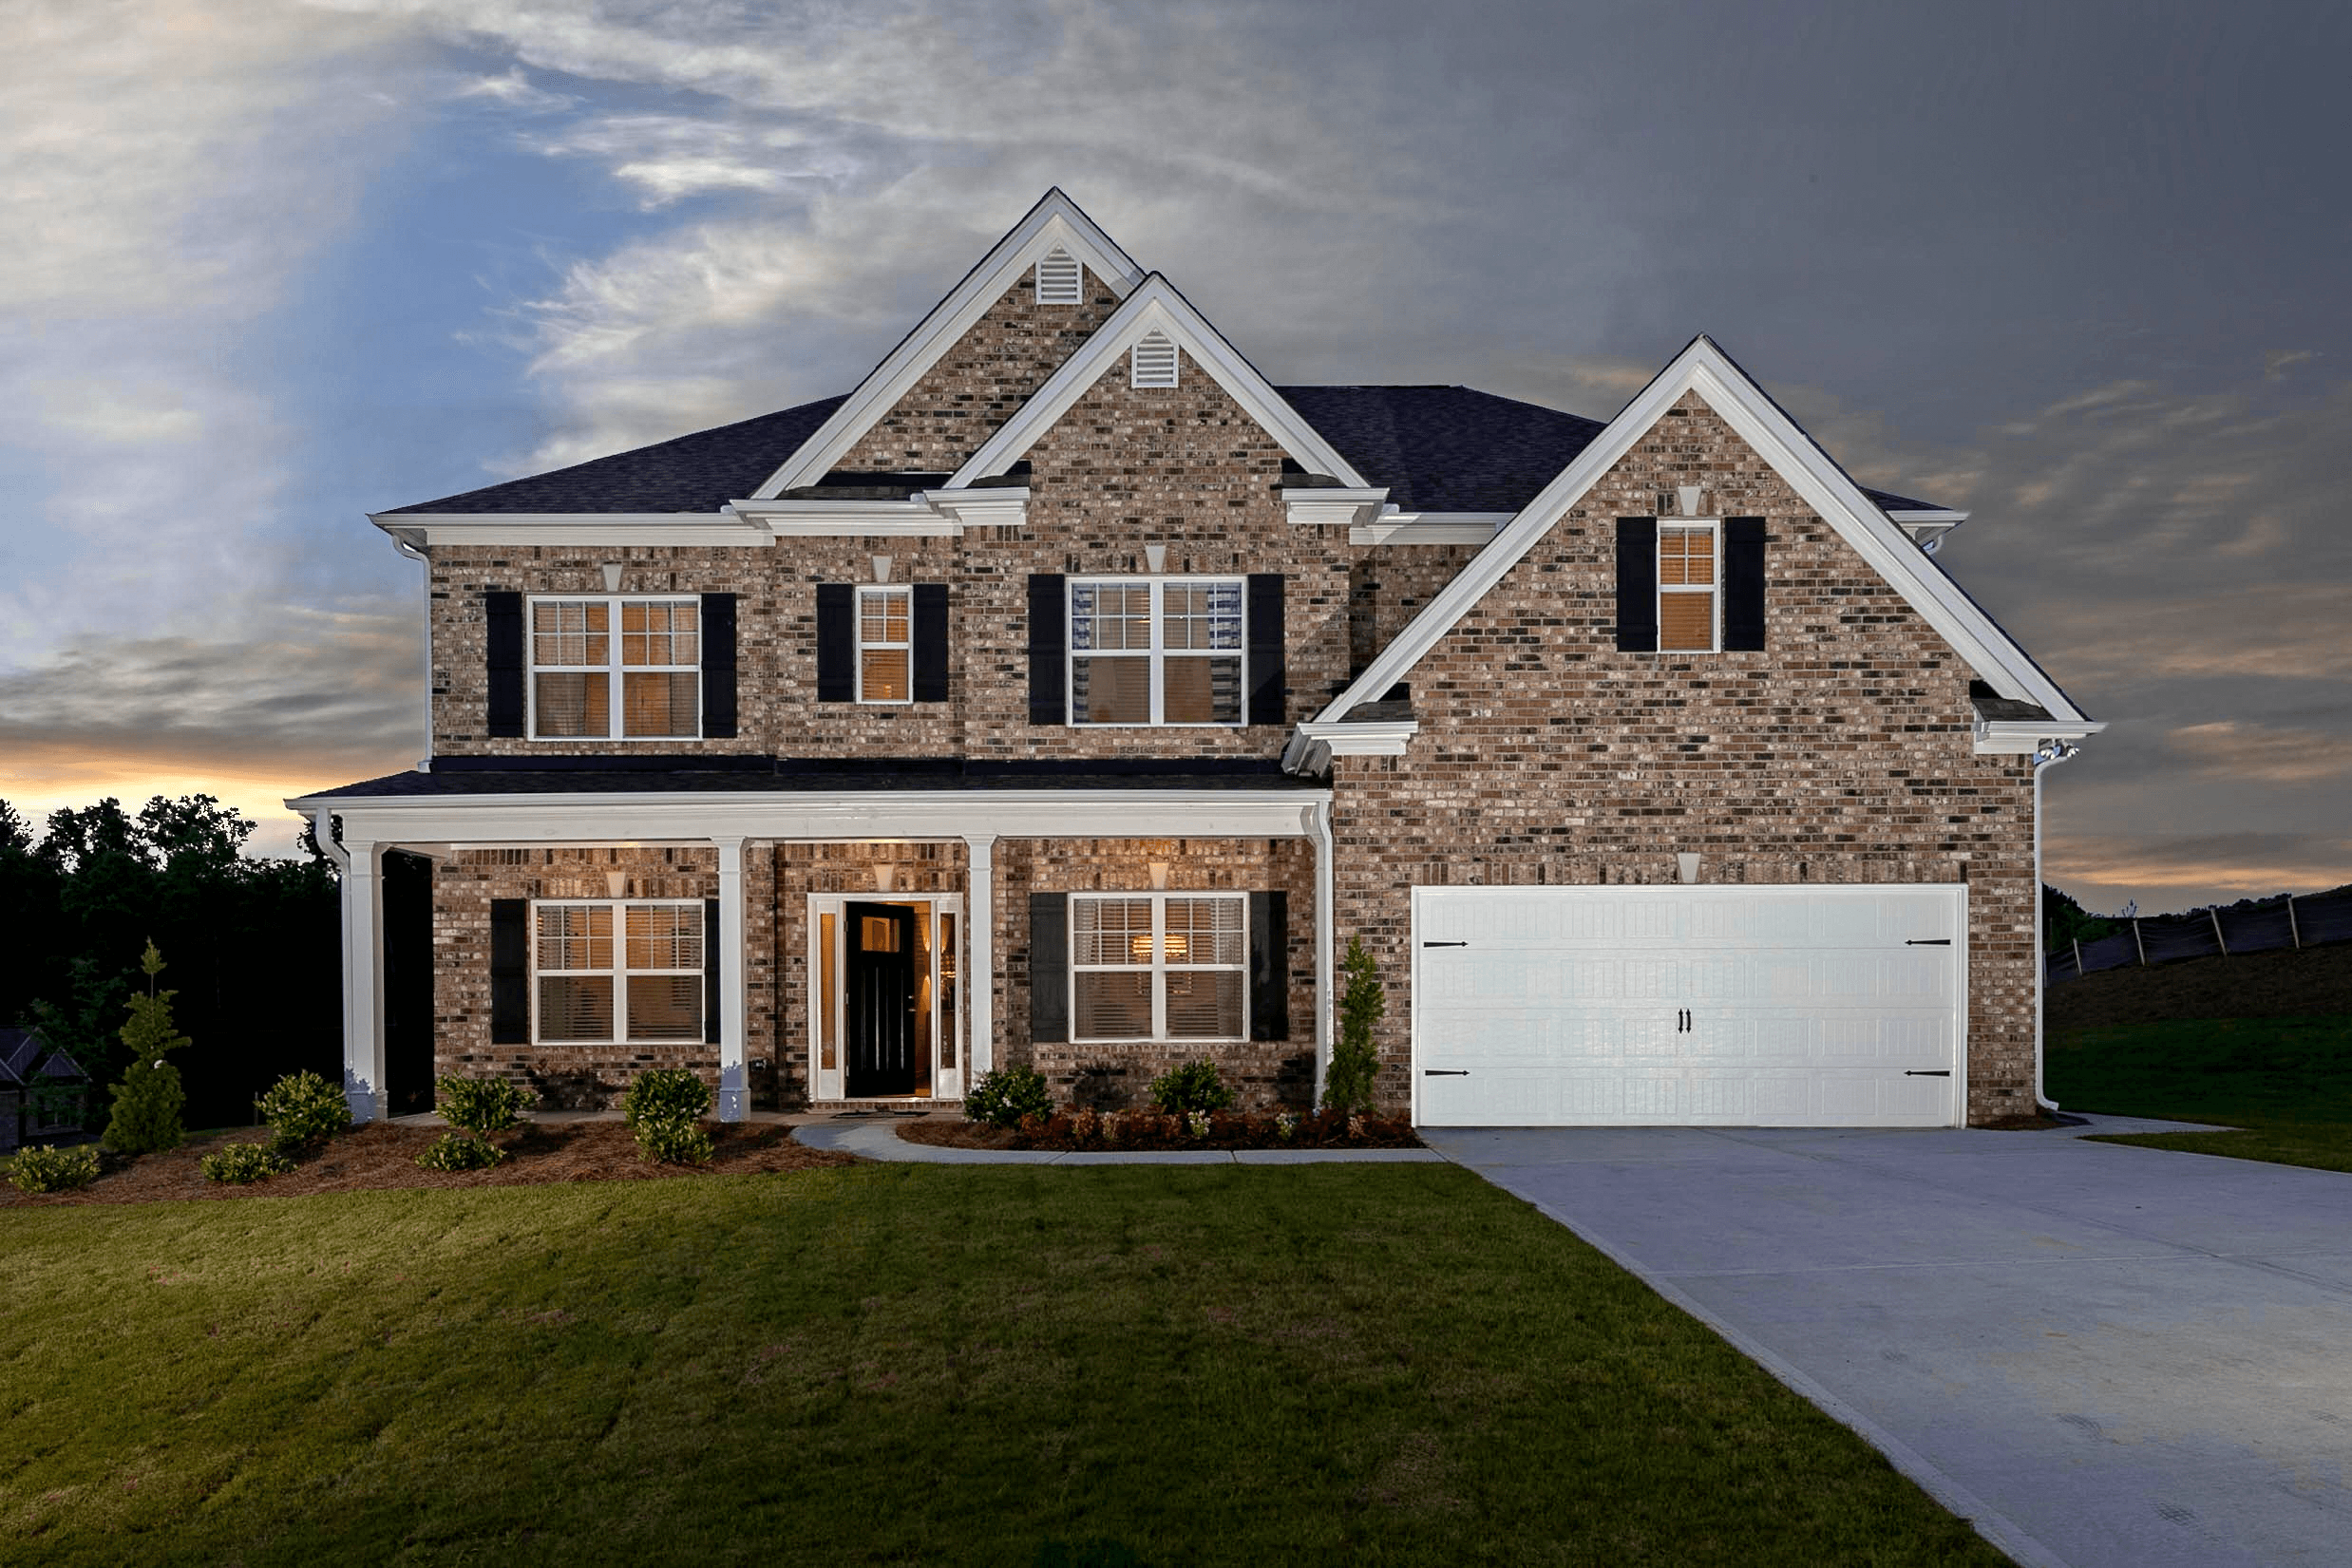 New Homes in Zebulon, NC | 295 Communities | NewHomeSource on